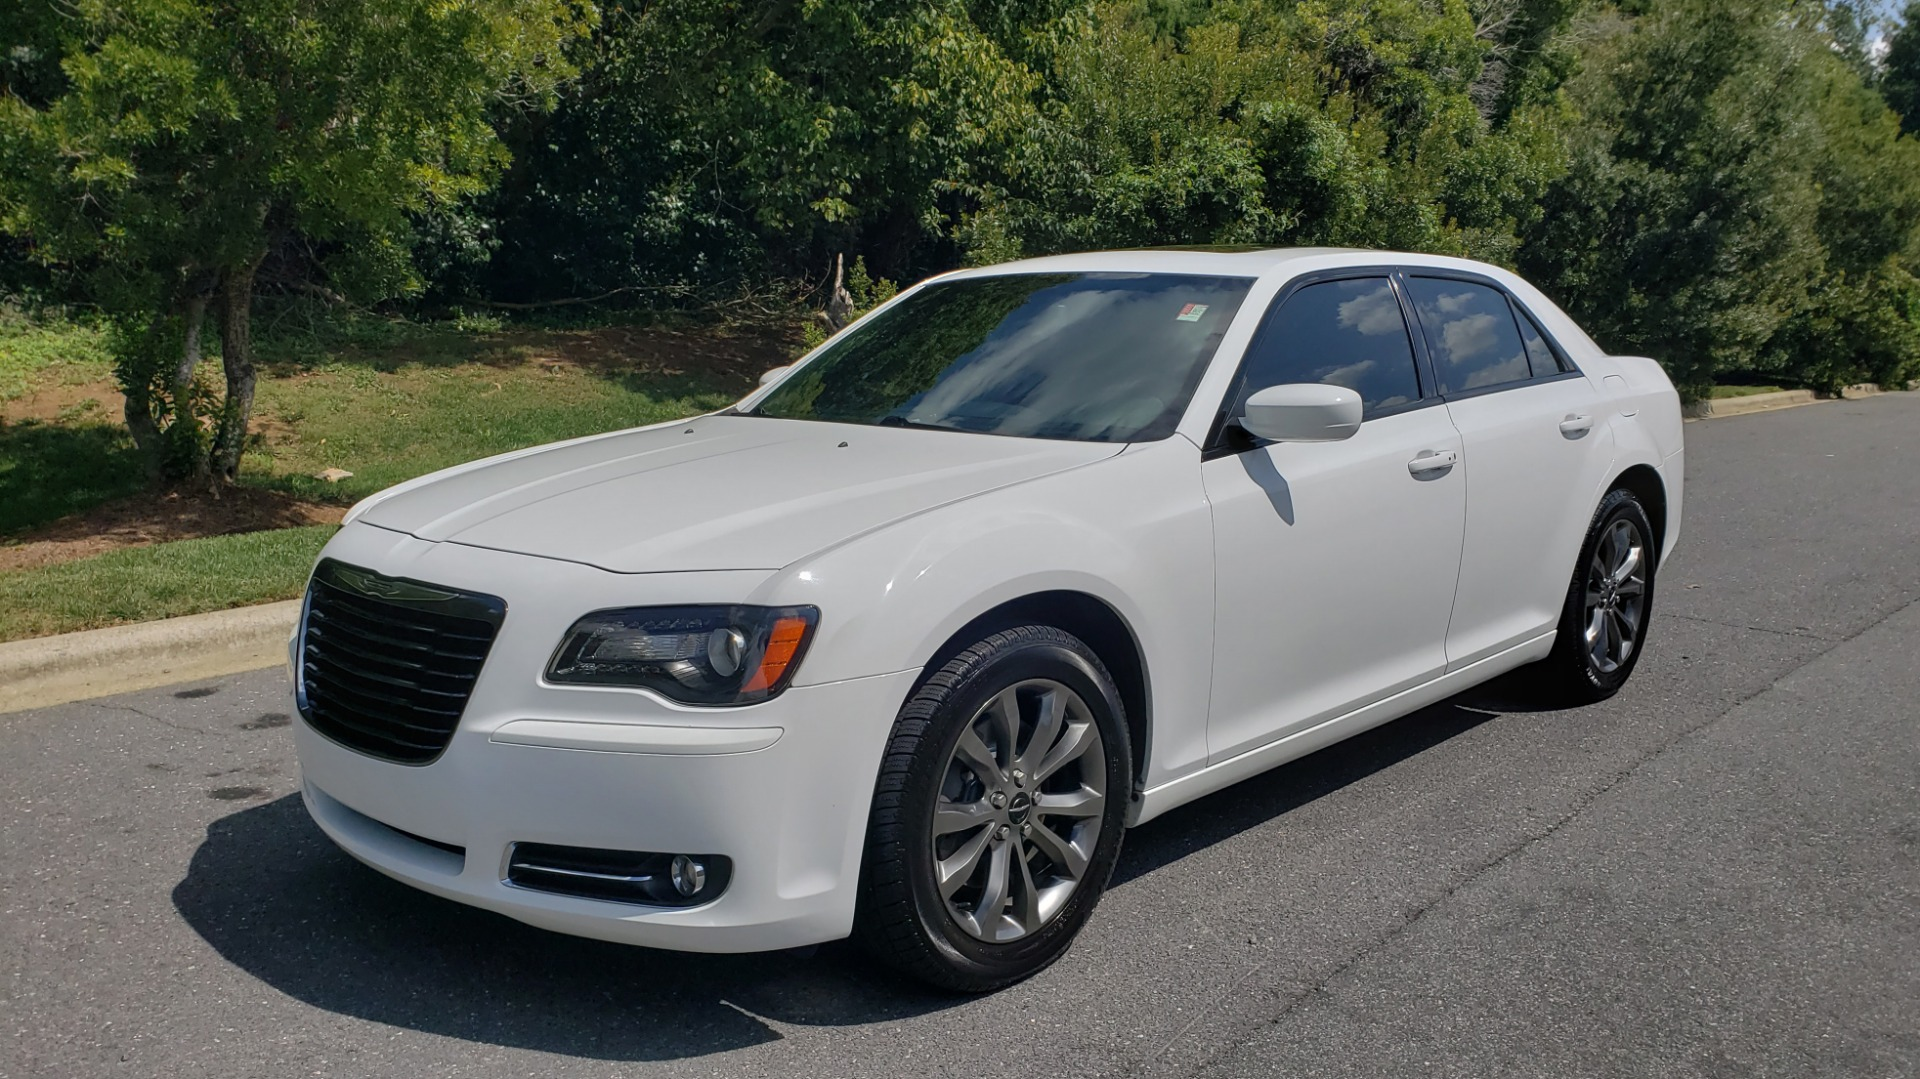 Used 2014 Chrysler 300 S / AWD / NAV / PANO-ROOF / HTD STS / BEATS SOUND / REARVIEW for sale Sold at Formula Imports in Charlotte NC 28227 1